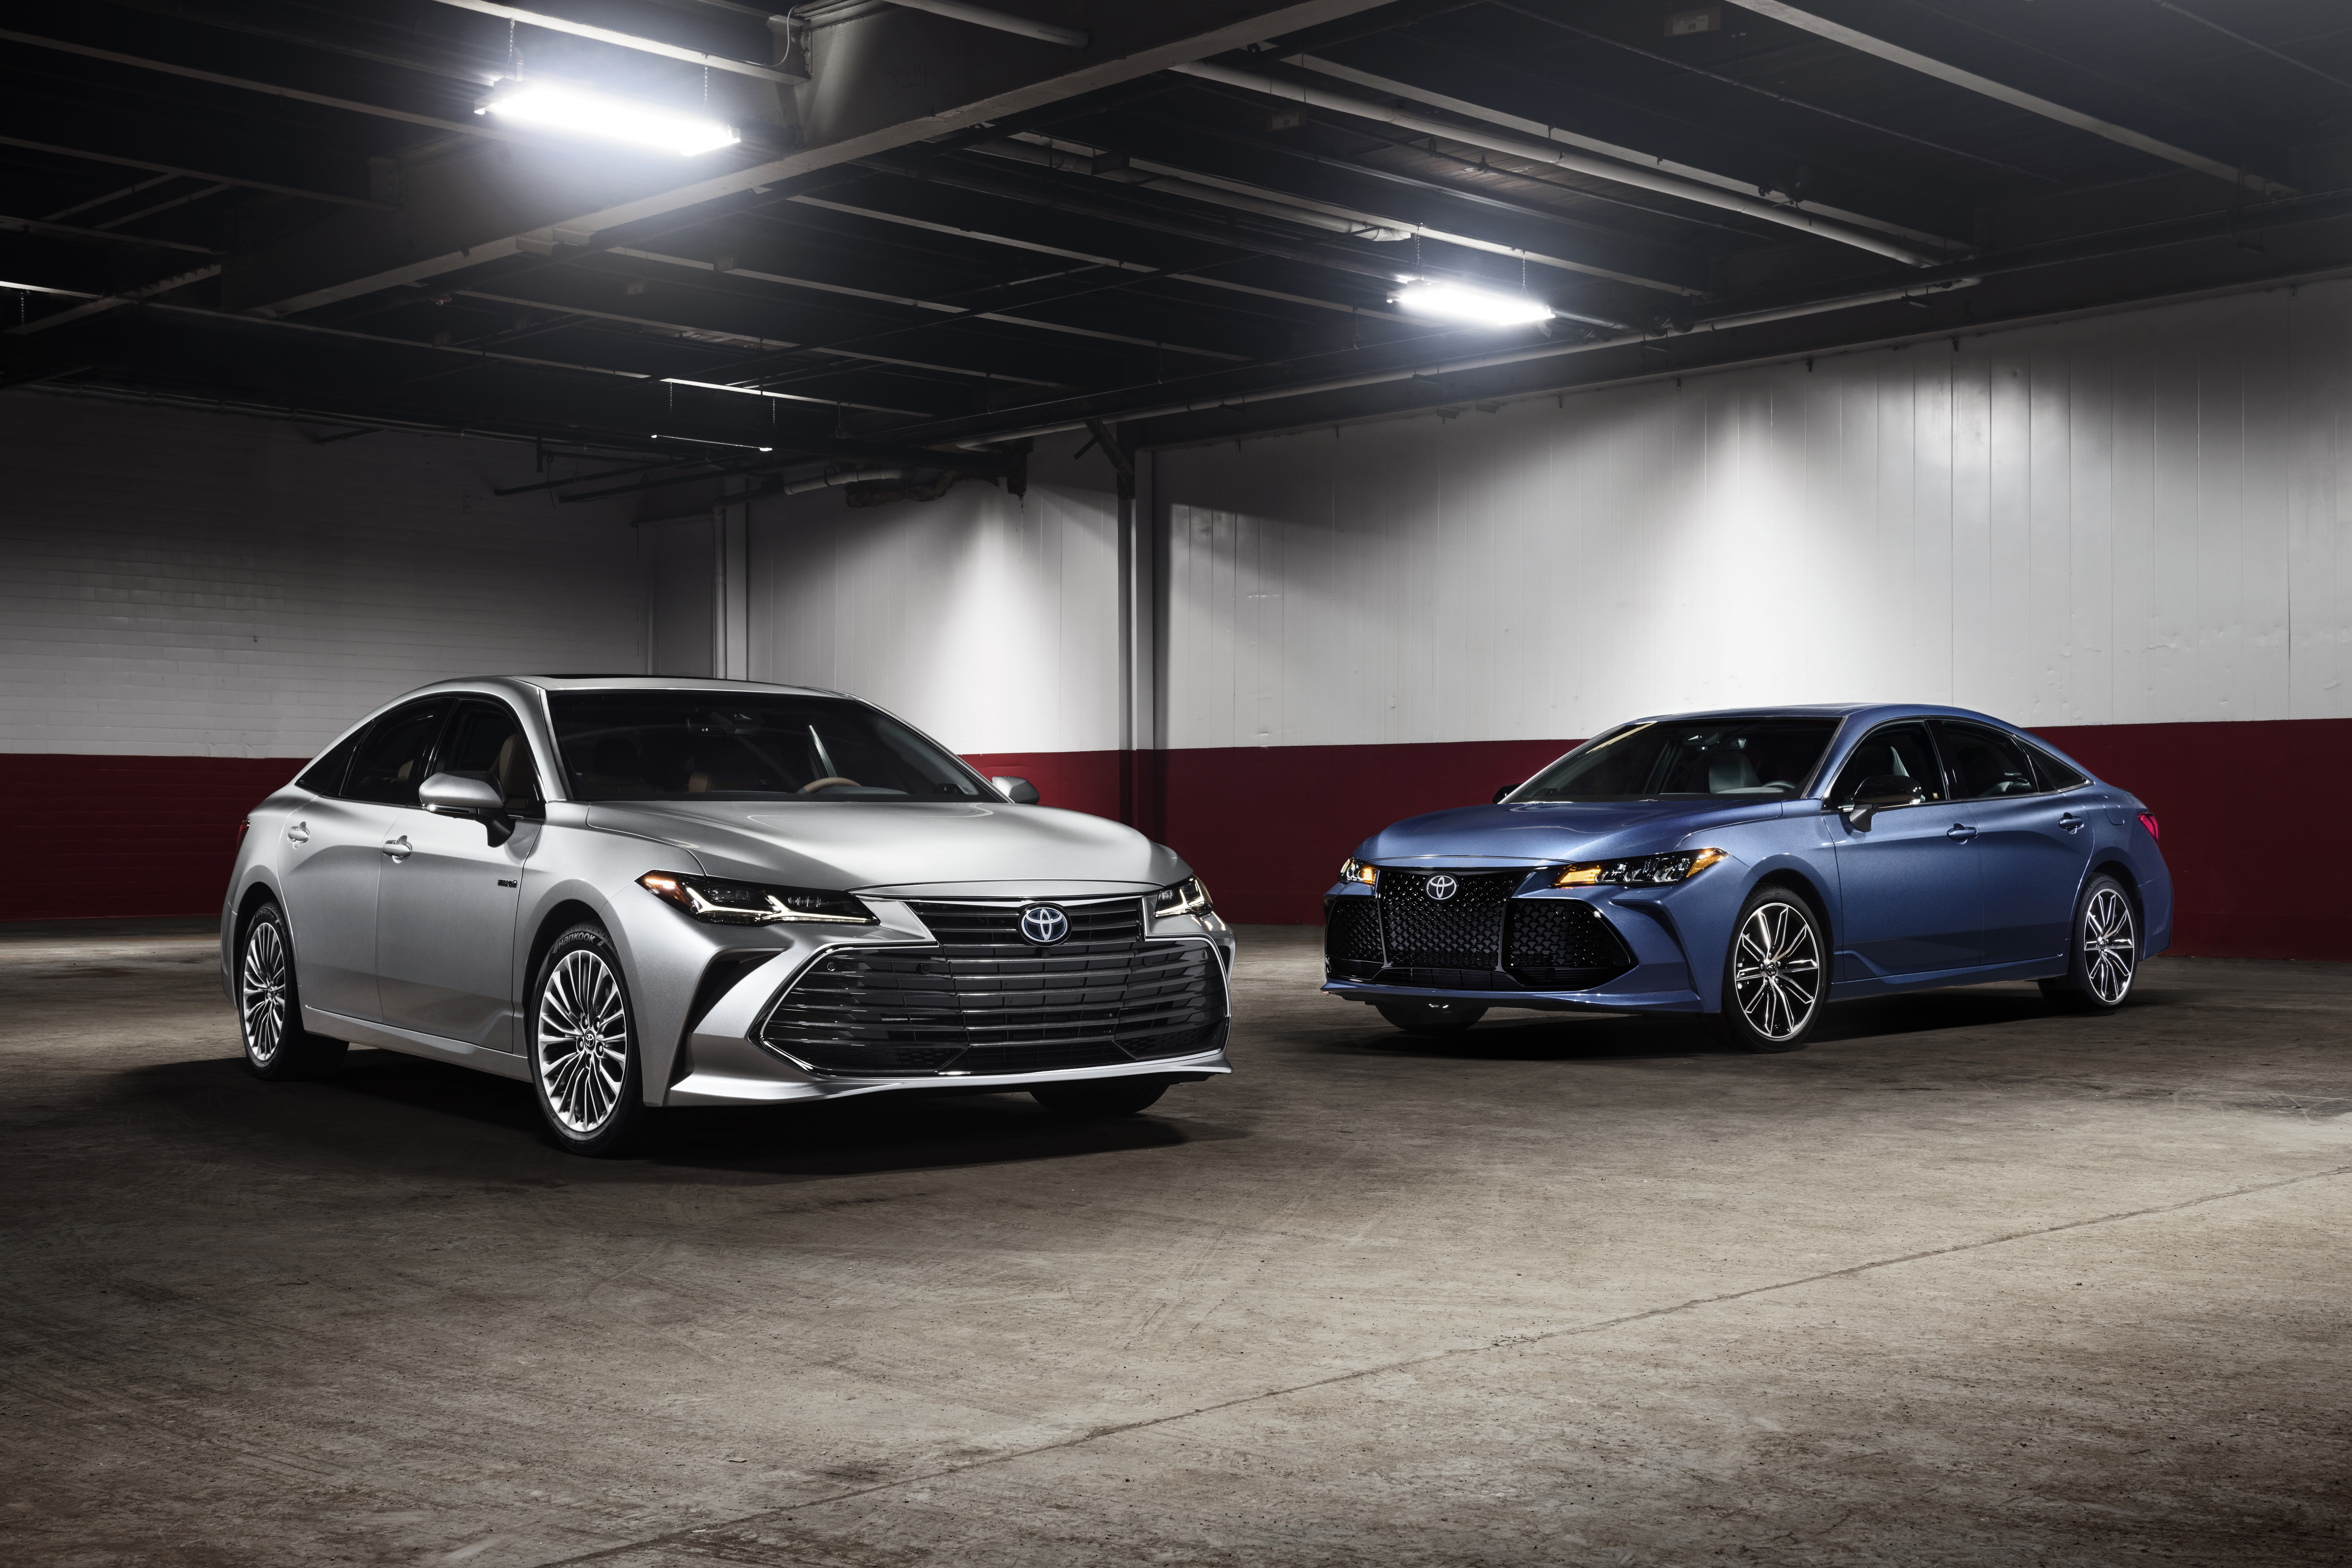 Le S Carplay Is Finally Coming To Toyota And Lexus Vehicles